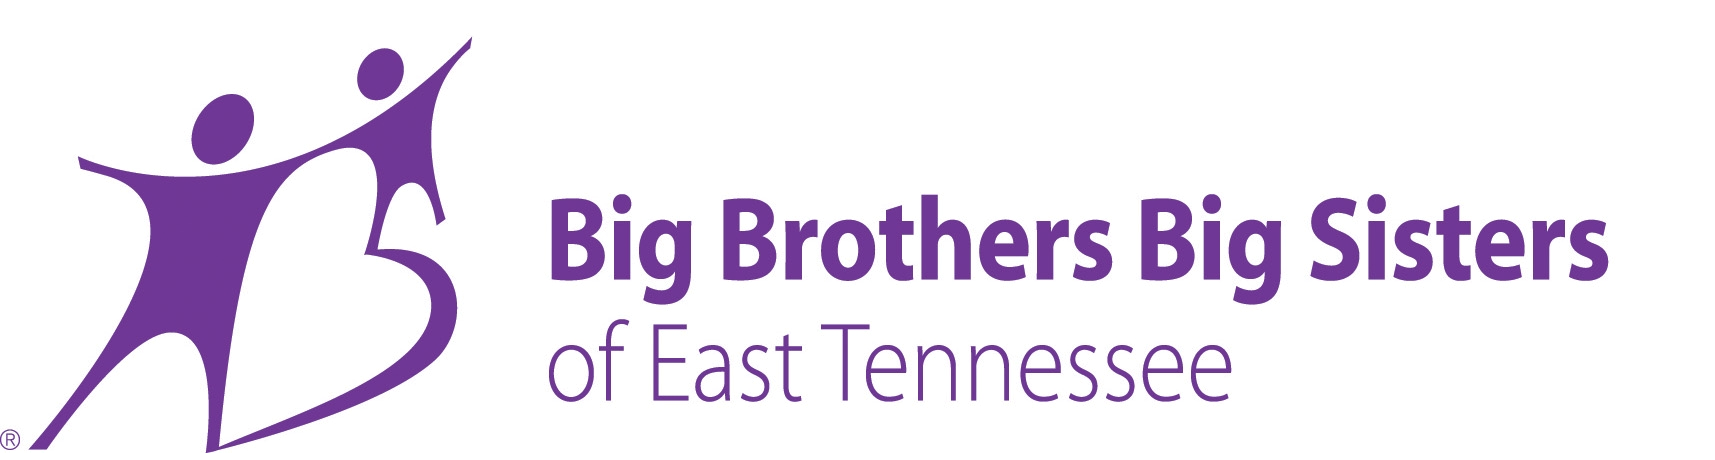 Big Brothers Big Sisters of East Tennessee